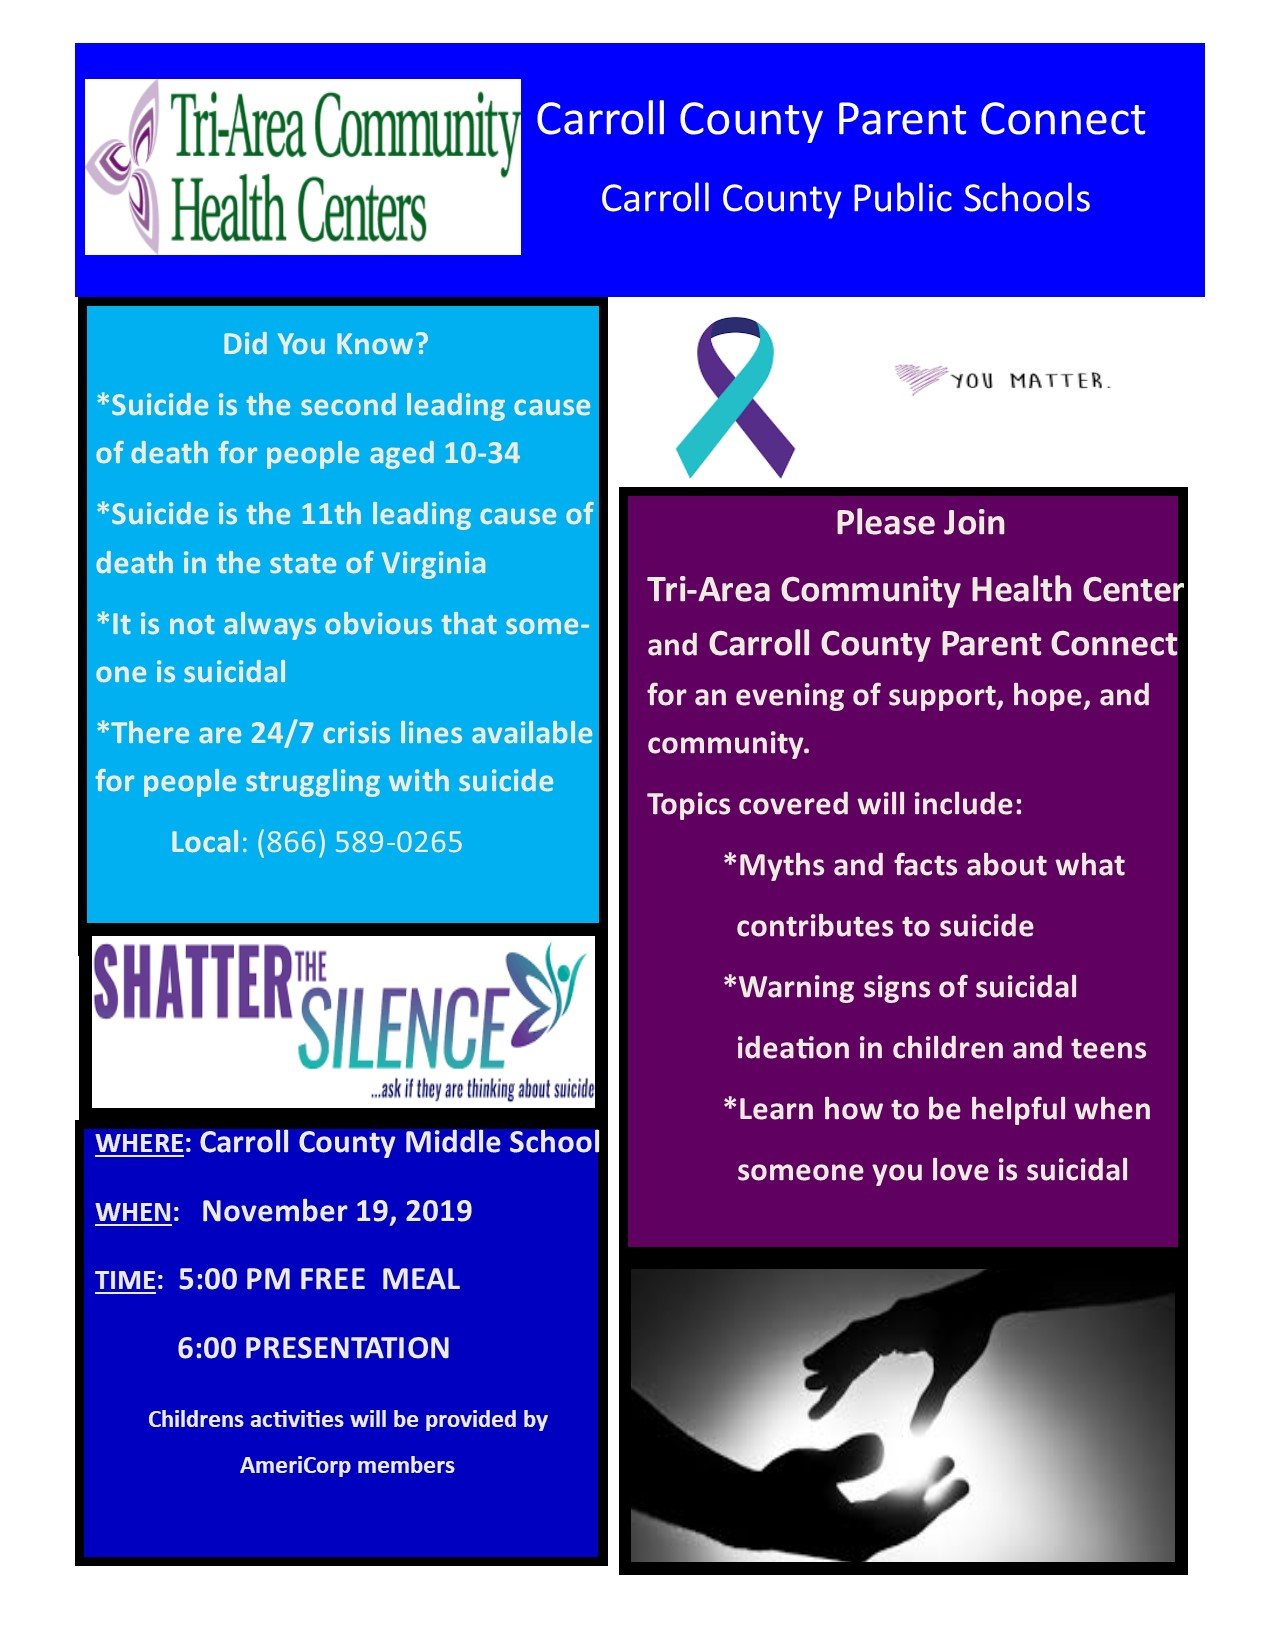 Parent Connect Event to Focus on Suicide Prevention